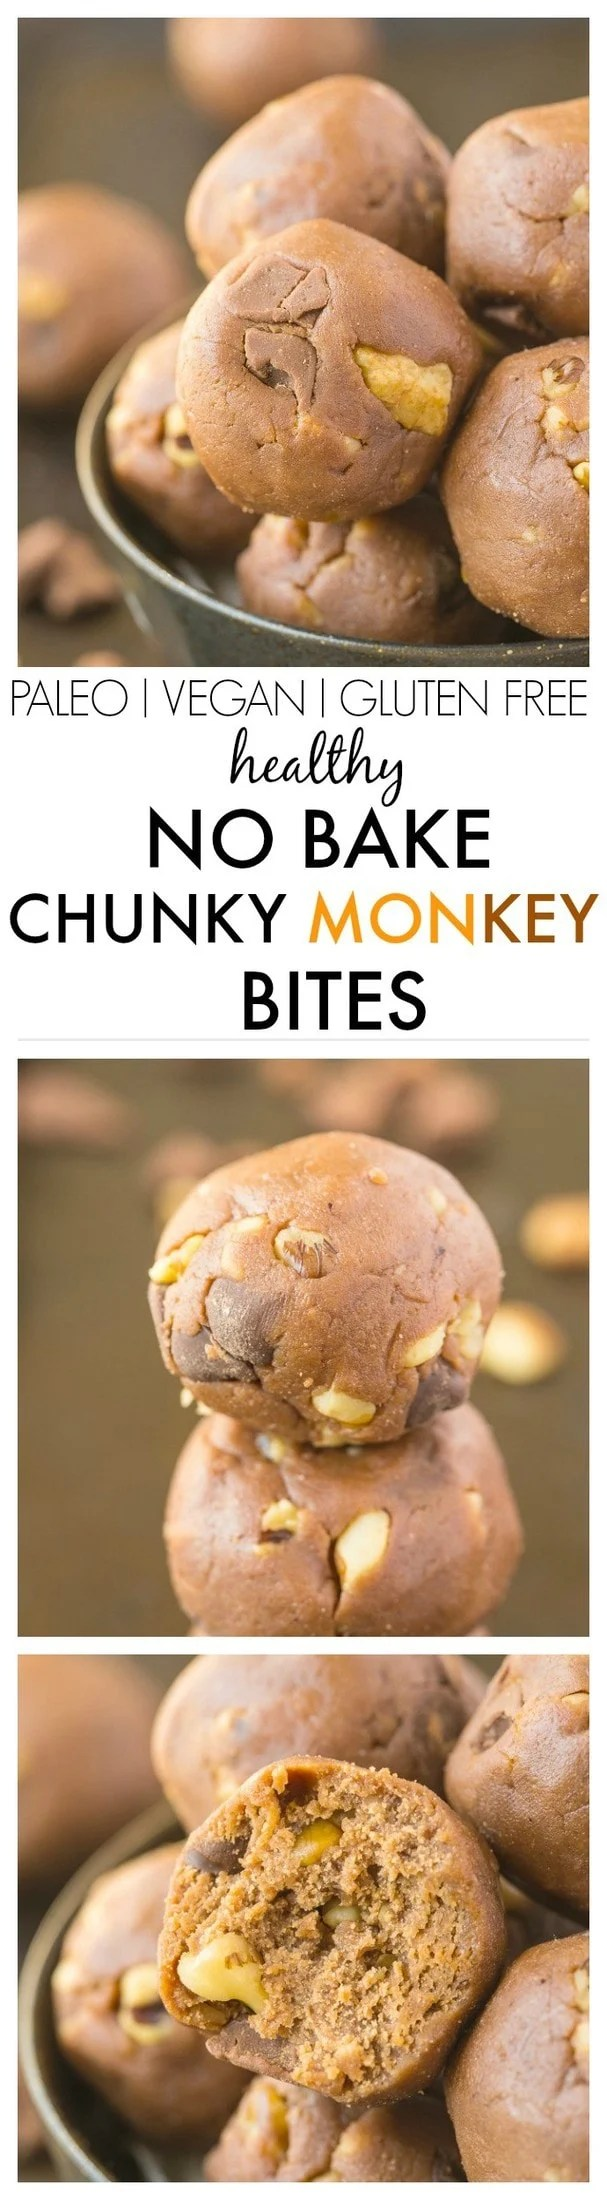 No Bake Chunky Monkey Bites which are the perfect snack recipe which tastes anything but healthy- But they are! Ready in 5 minutes! {vegan, gluten free, paleo, high protein recipe}